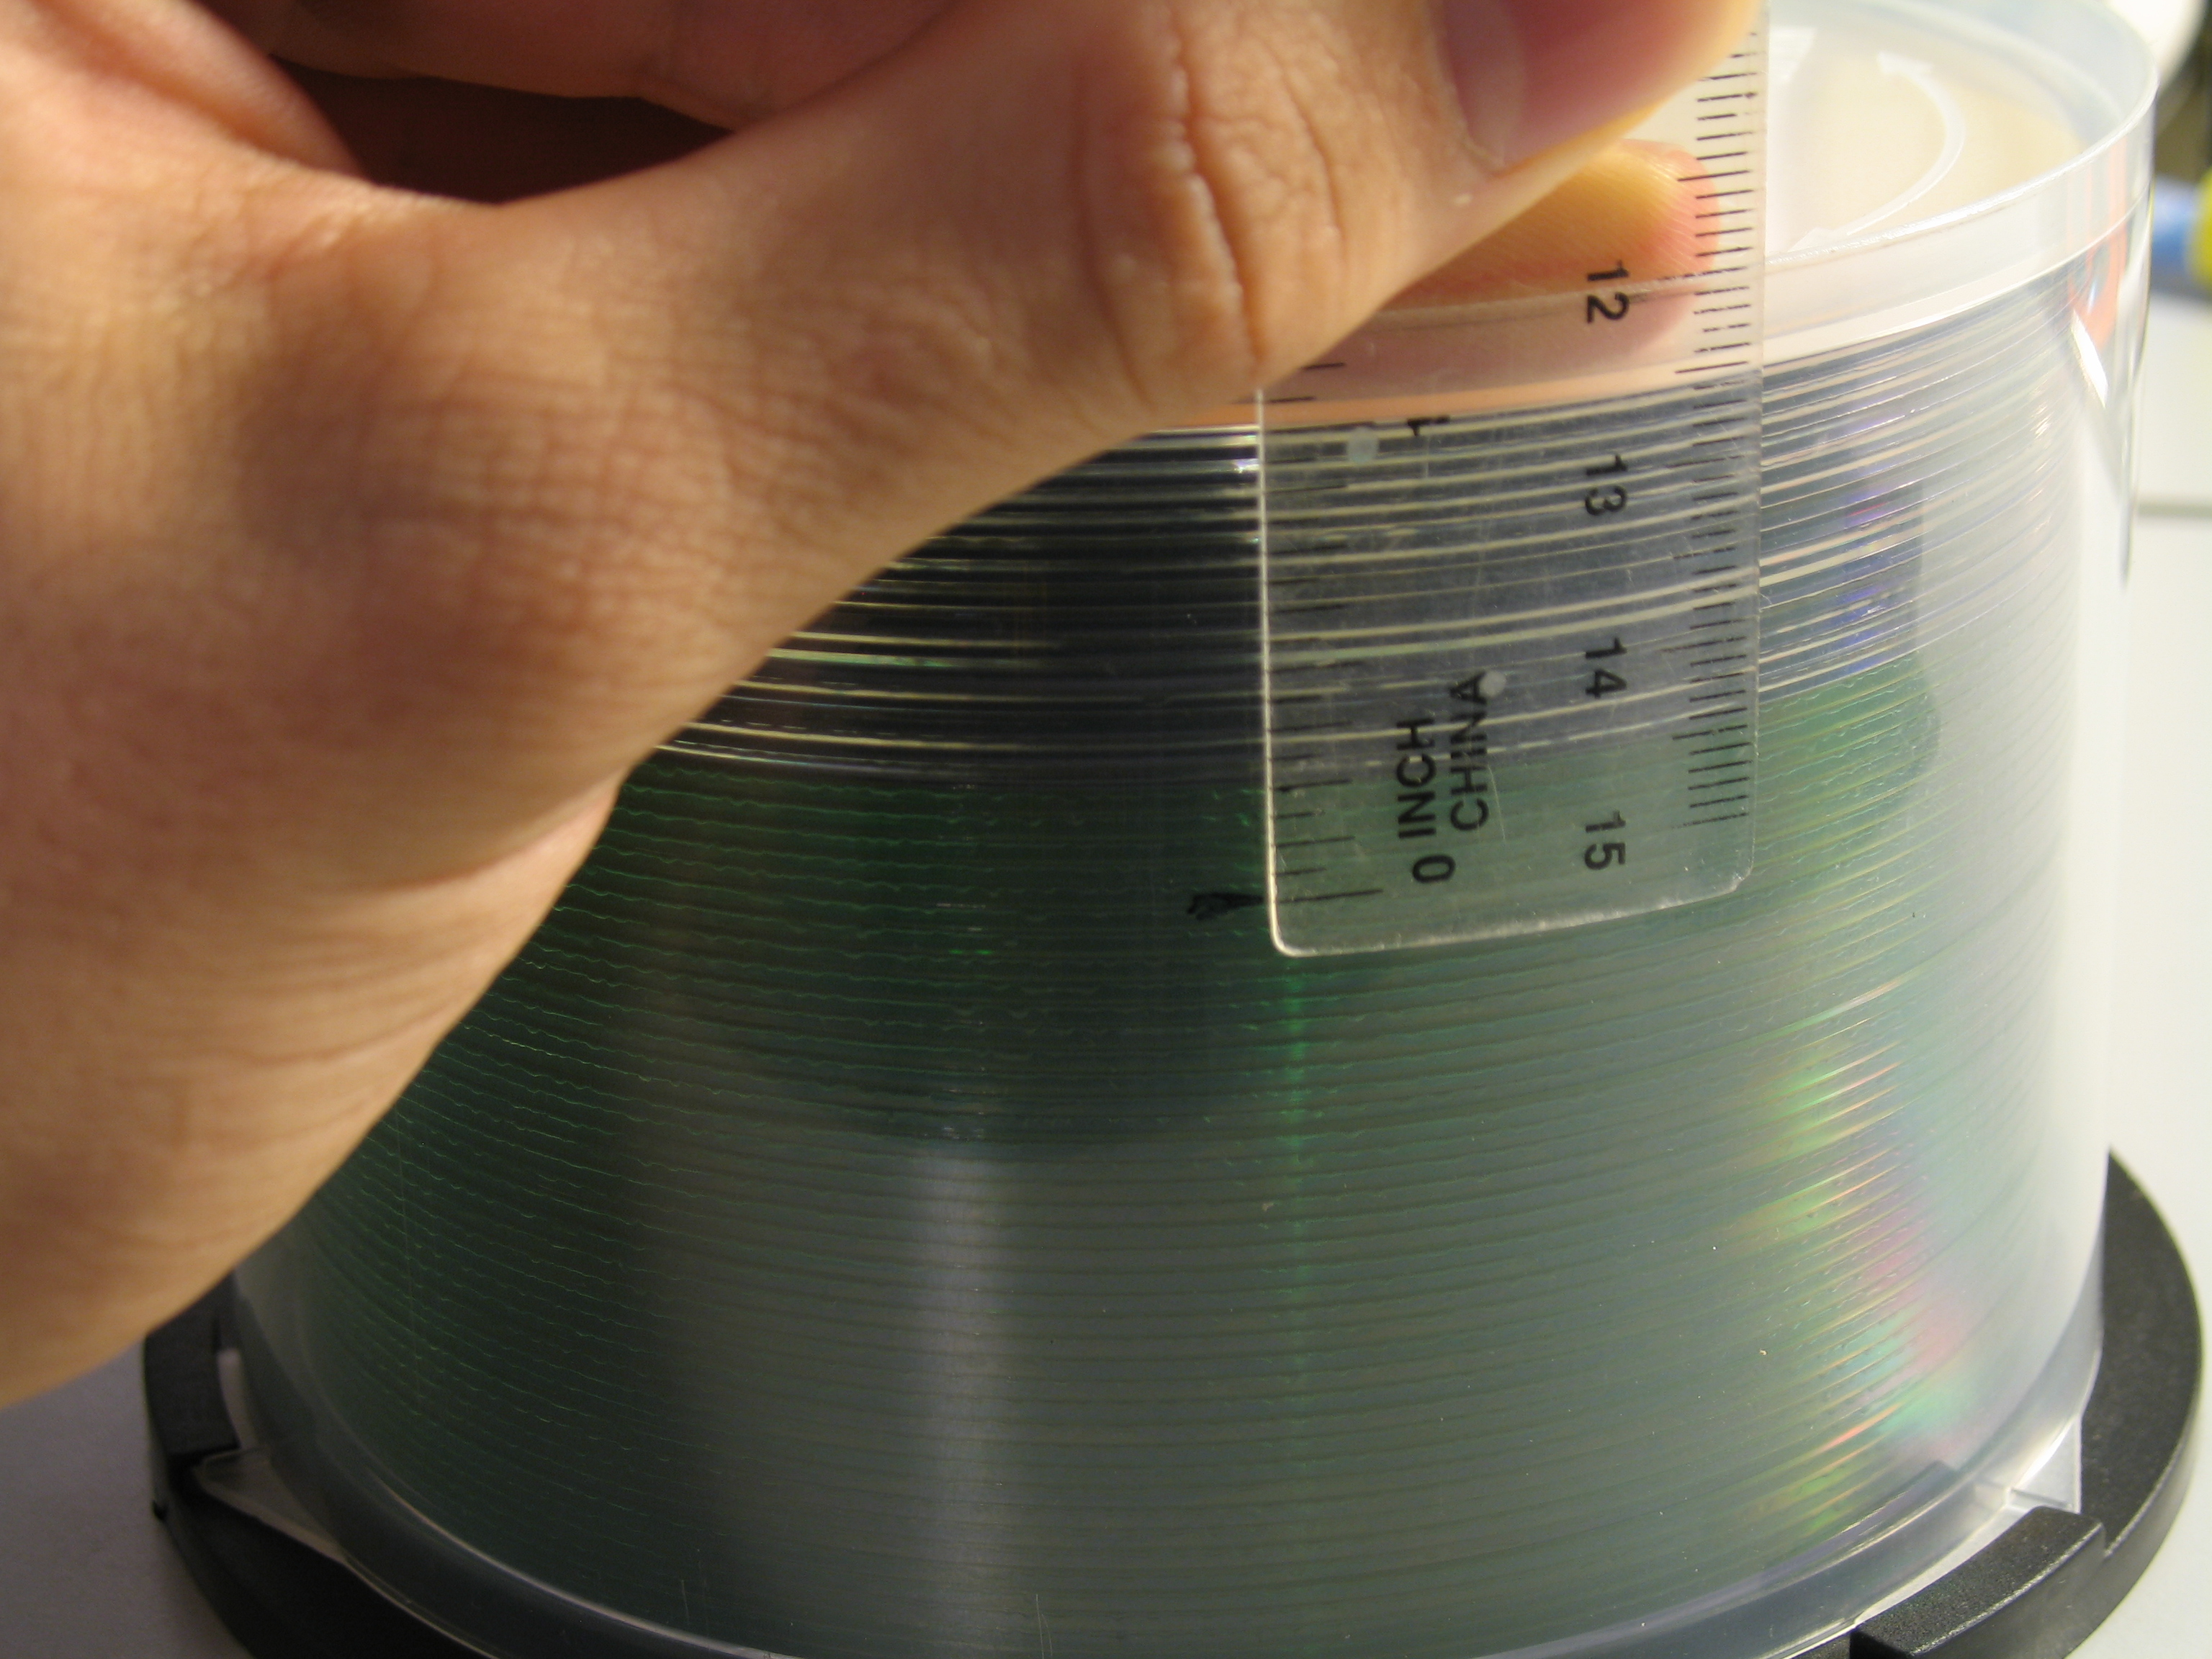 Picture of Cut CD Tower